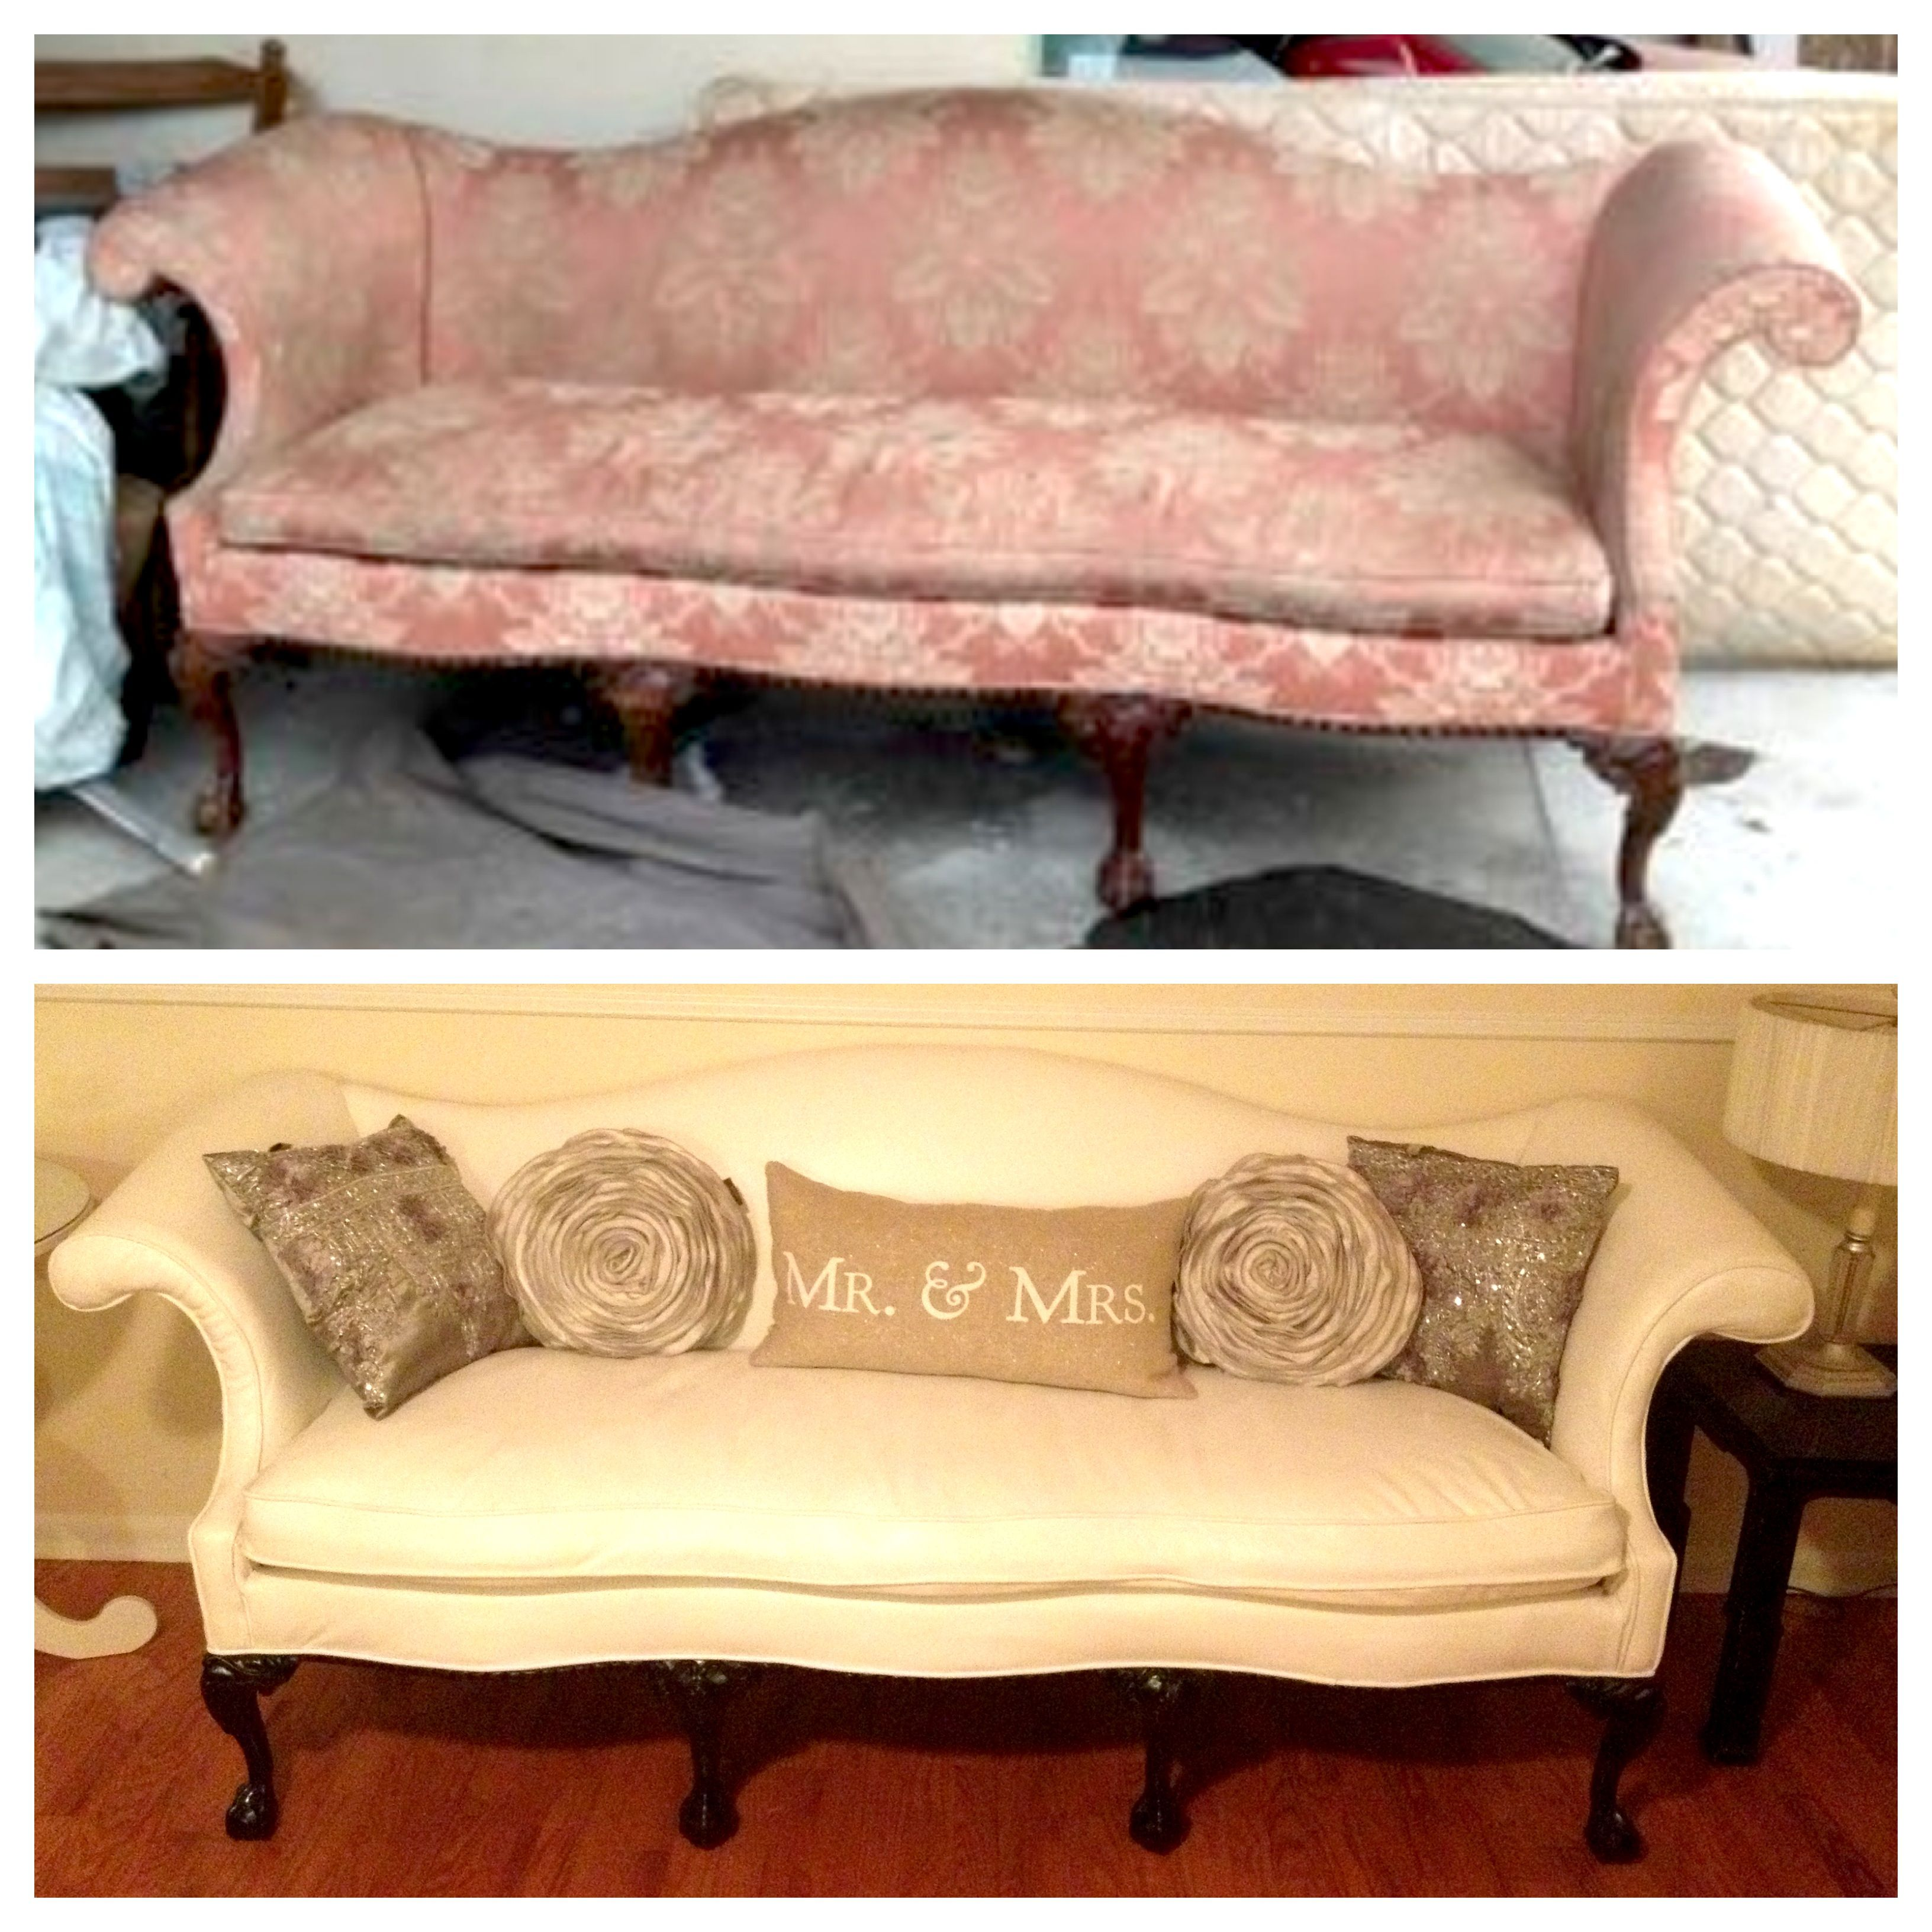 Vintage Couch Before and After Furniture Reupholster for The